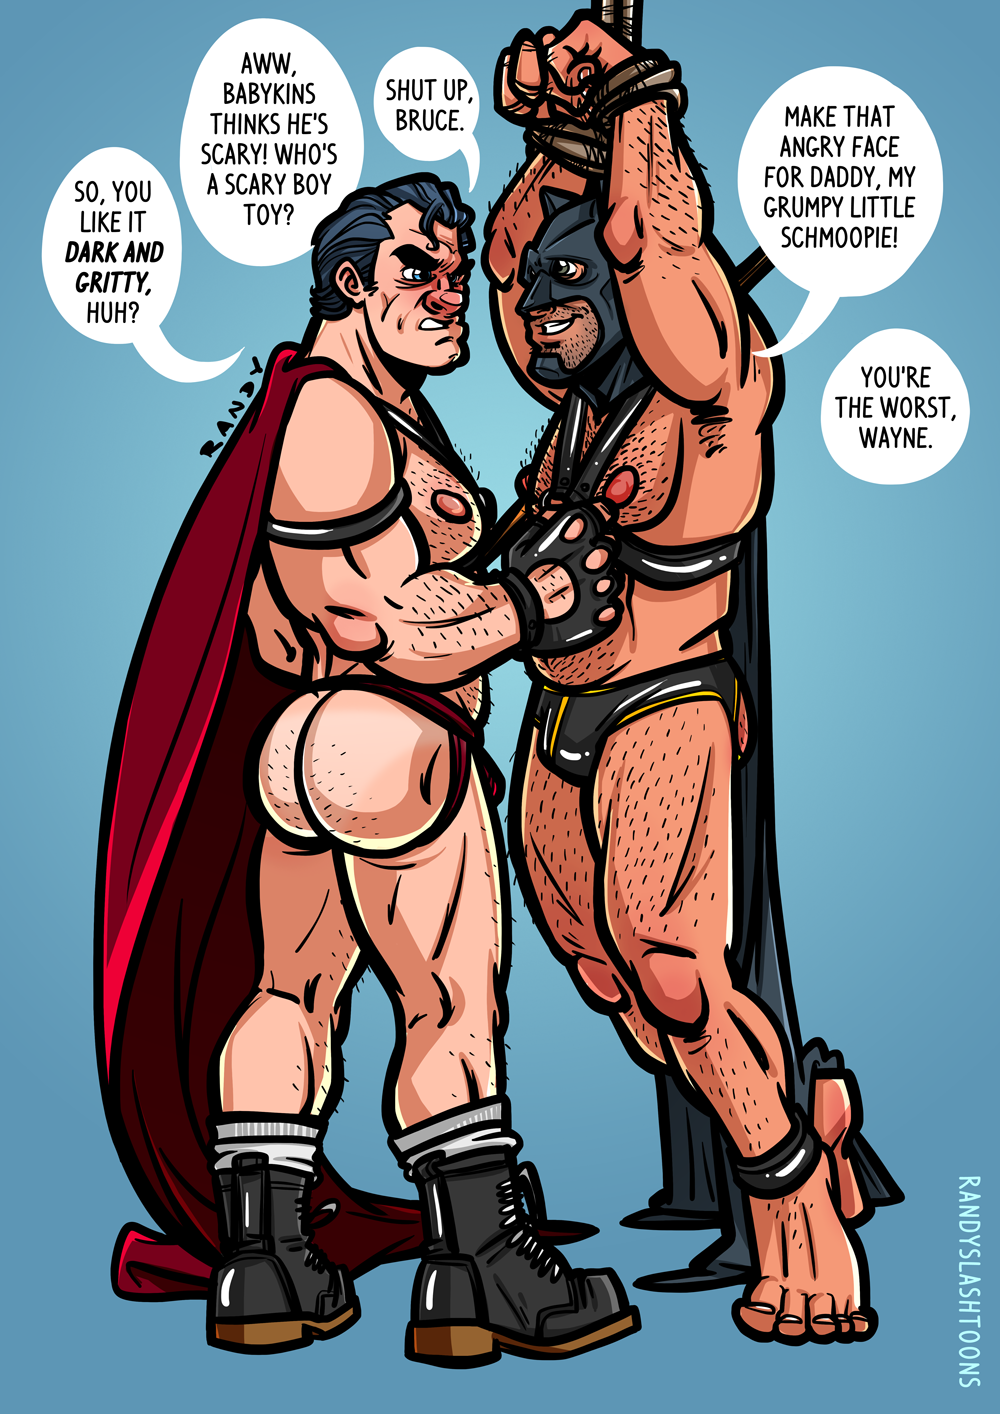 Batman superman hard gay porn